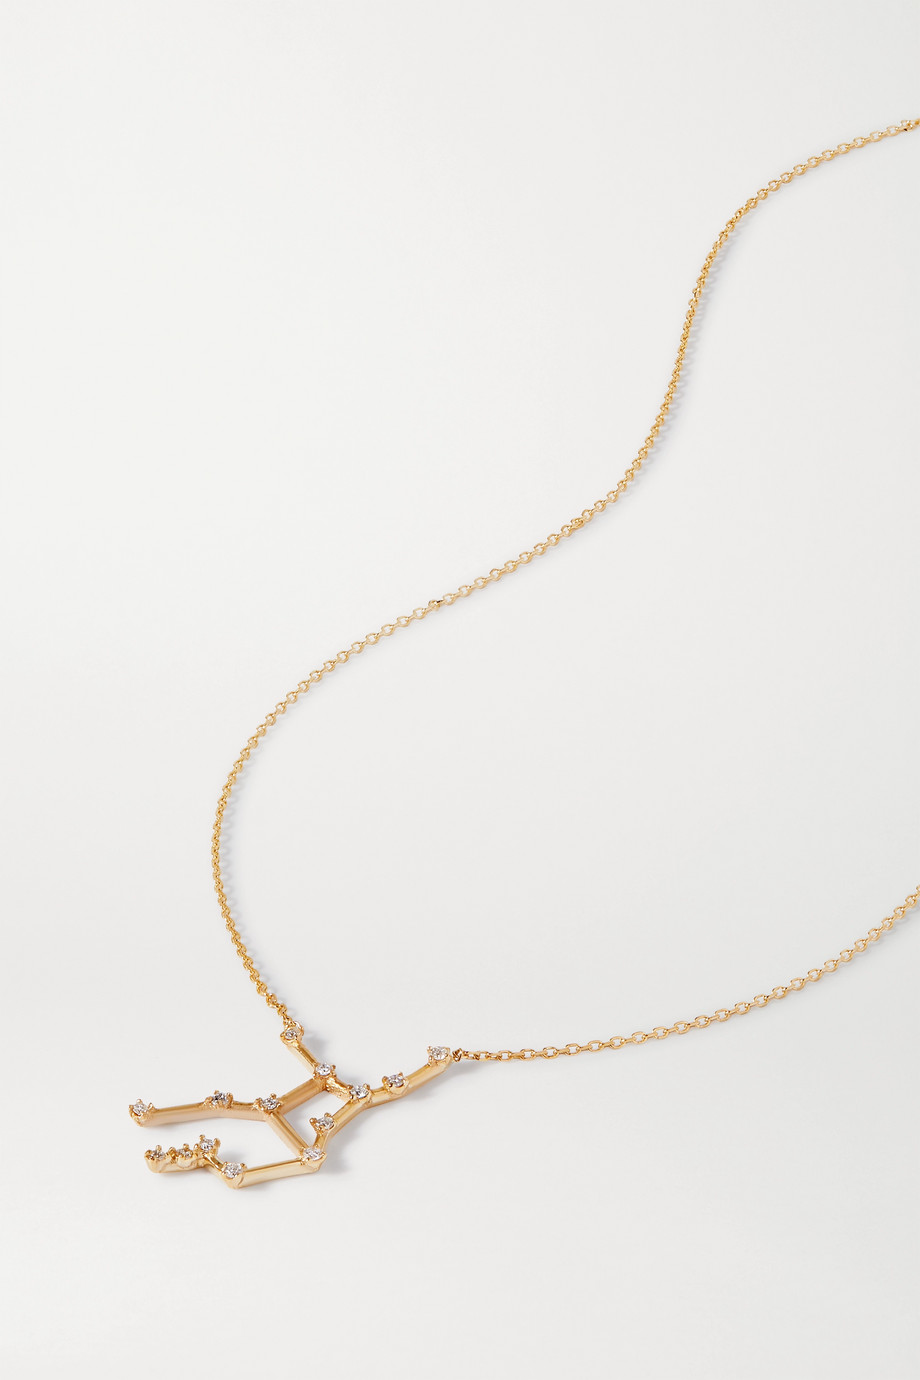 SARAH & SEBASTIAN Celestial Virgo 10-karat gold diamond necklace